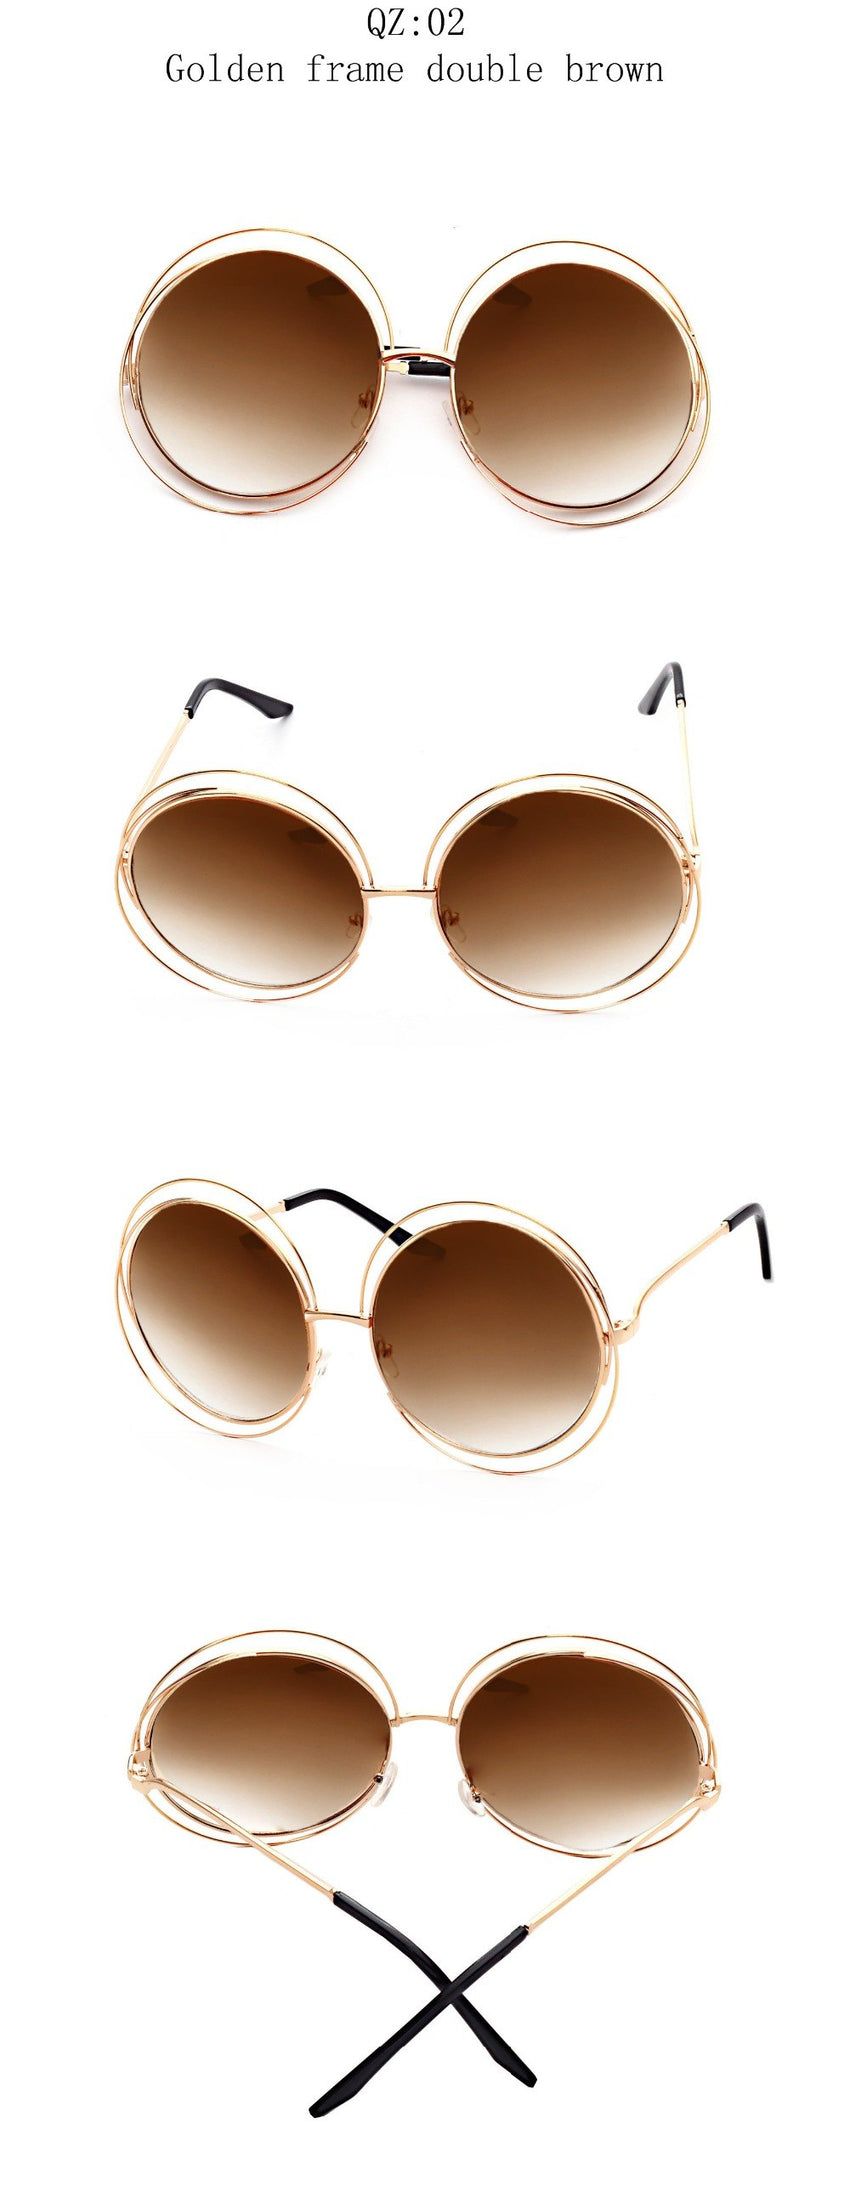 Curtain Brand Women'svintage Round Oversized Mirror Lens Sunglasses Uv400 Qz001